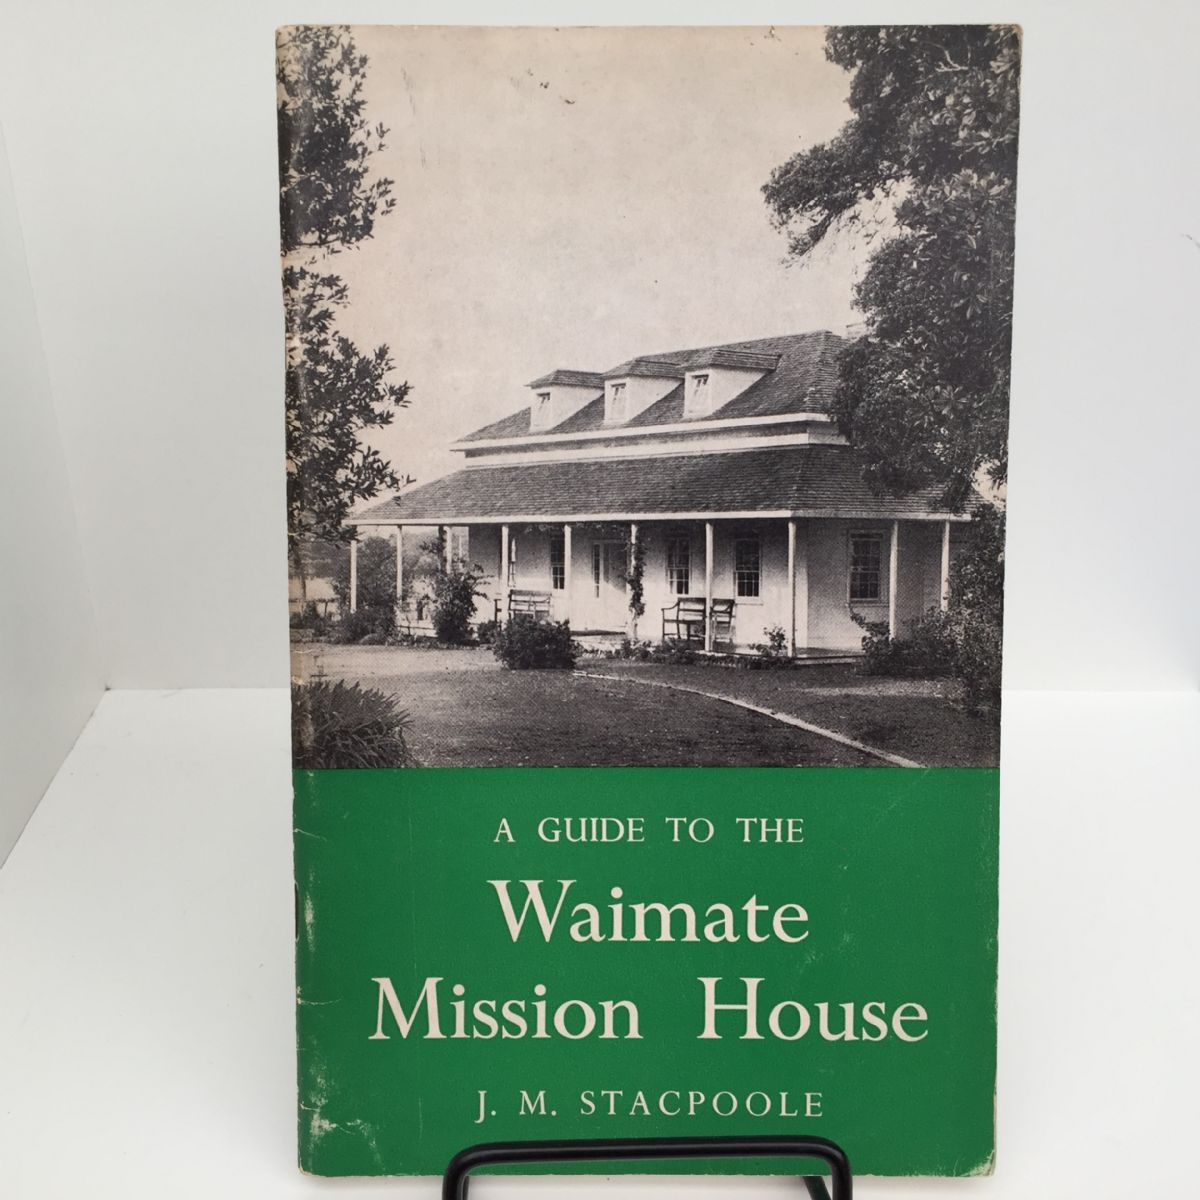 A guide to the Waimate Mission House